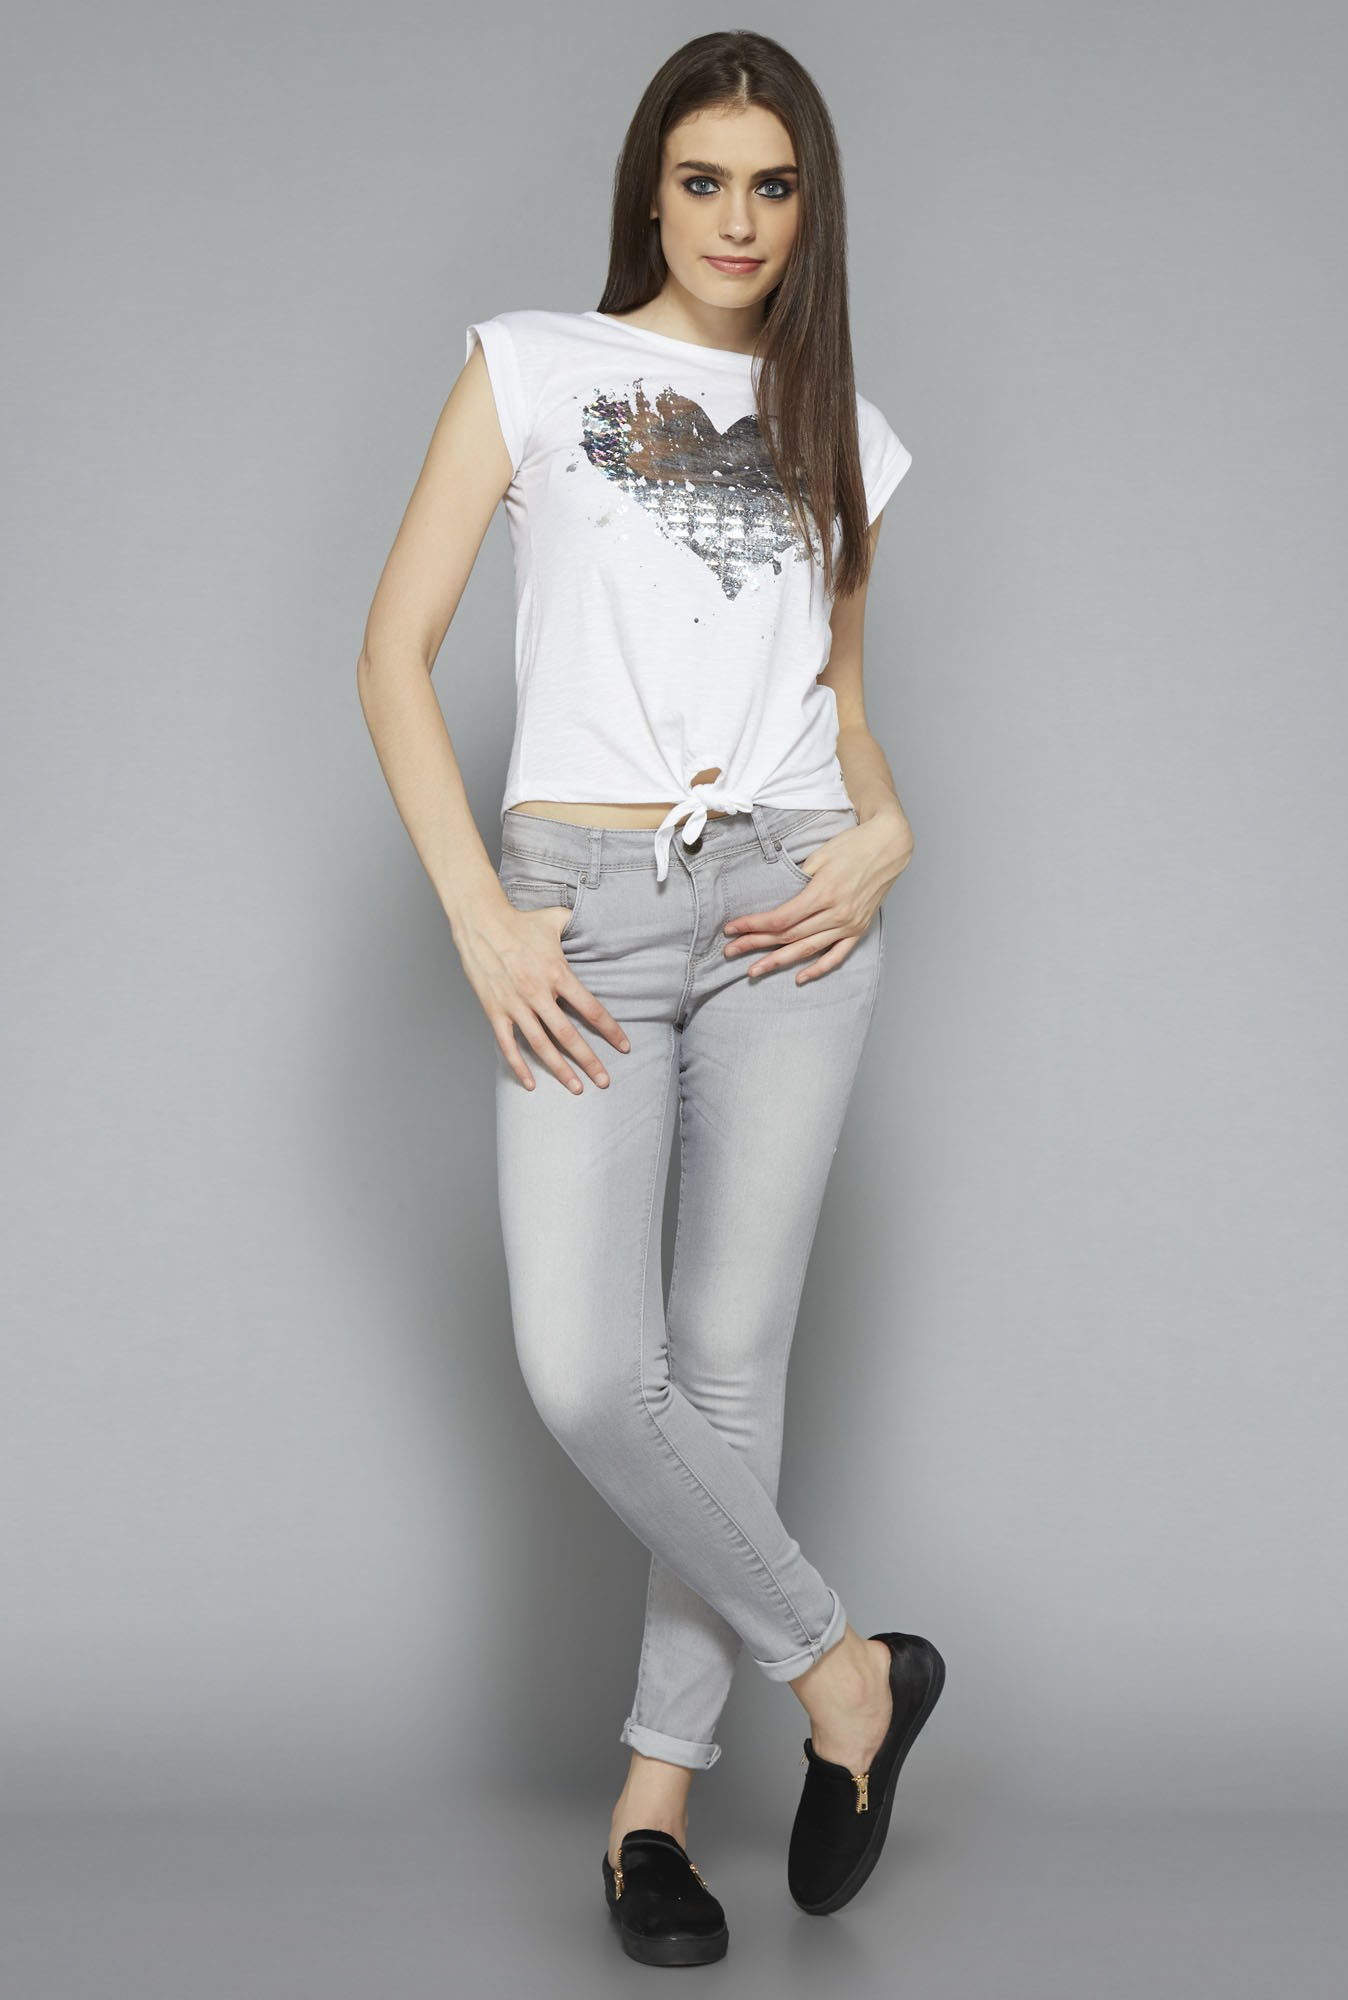 Nuon by Westside White Heart Print Top